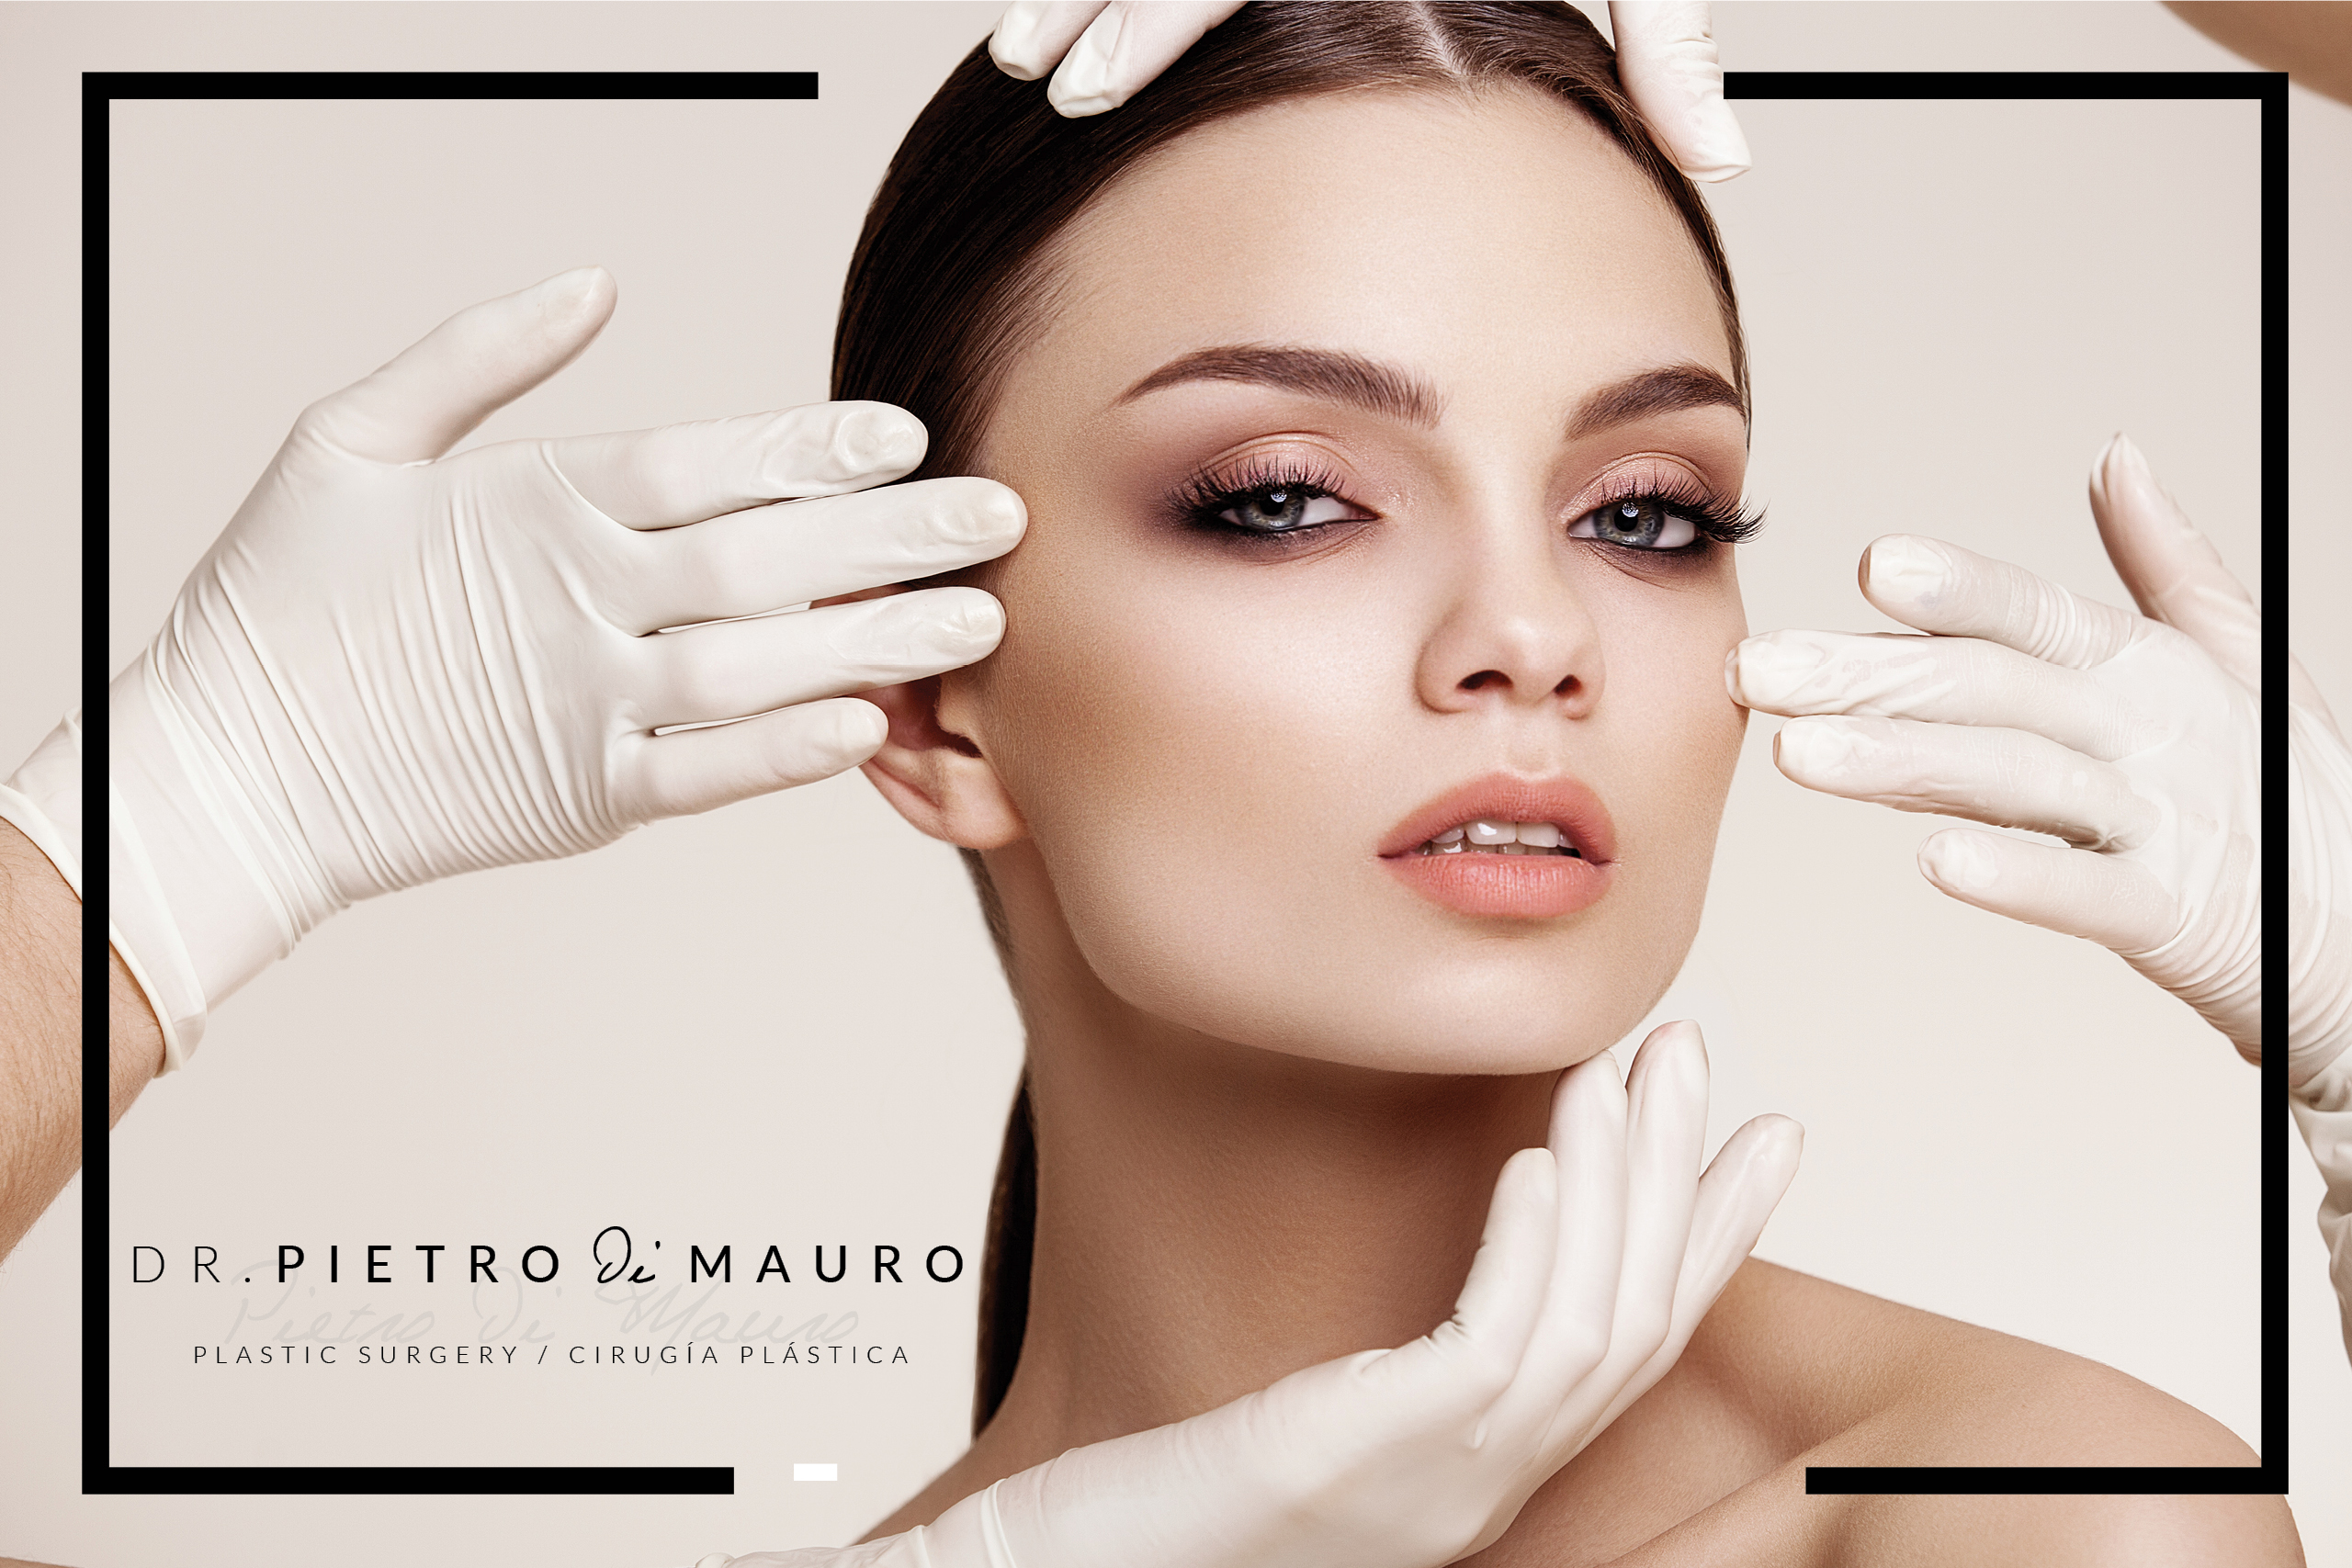 Beautiful woman with white gloves touching her face - Pietro Di Mauro